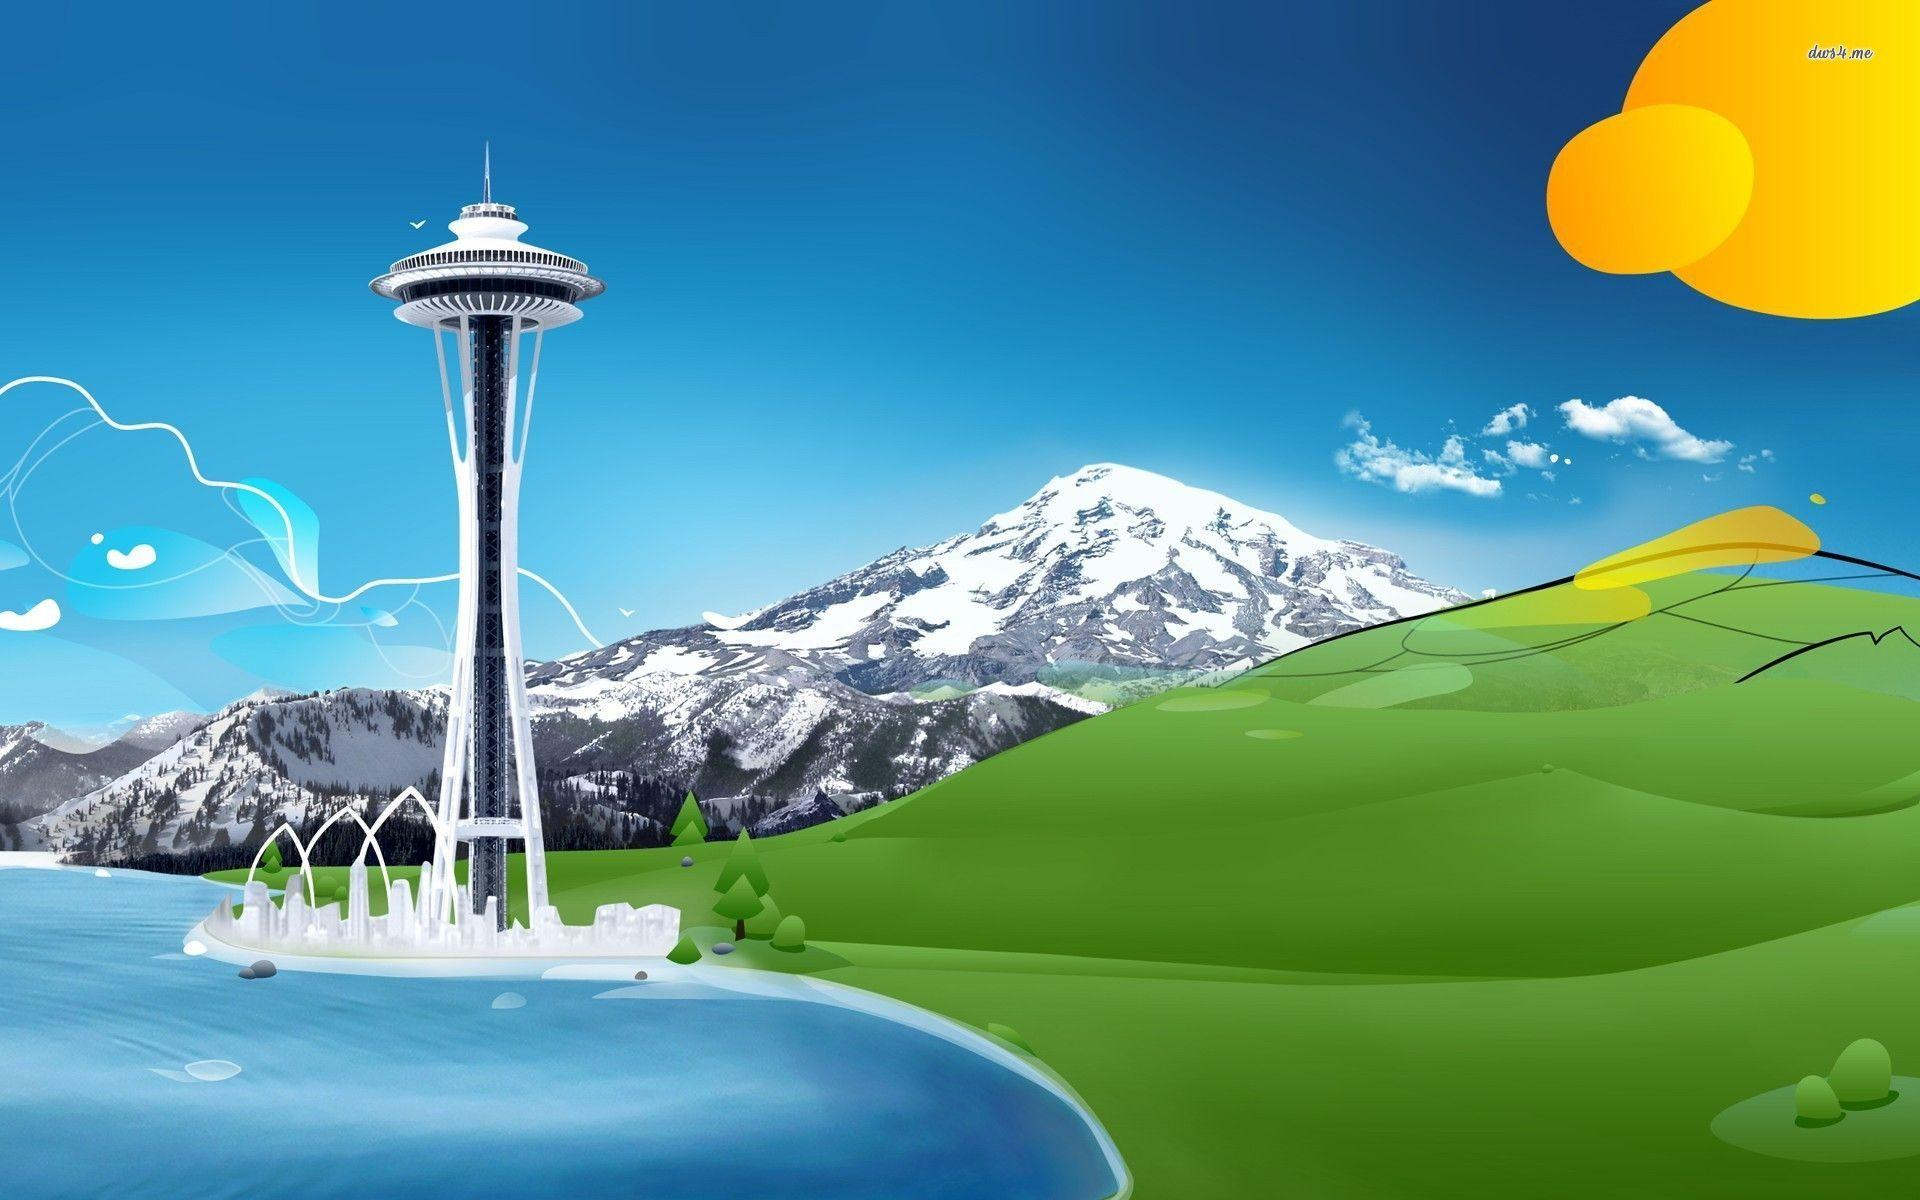 Space Needle in the mountains wallpaper - Digital Art wallpapers - #